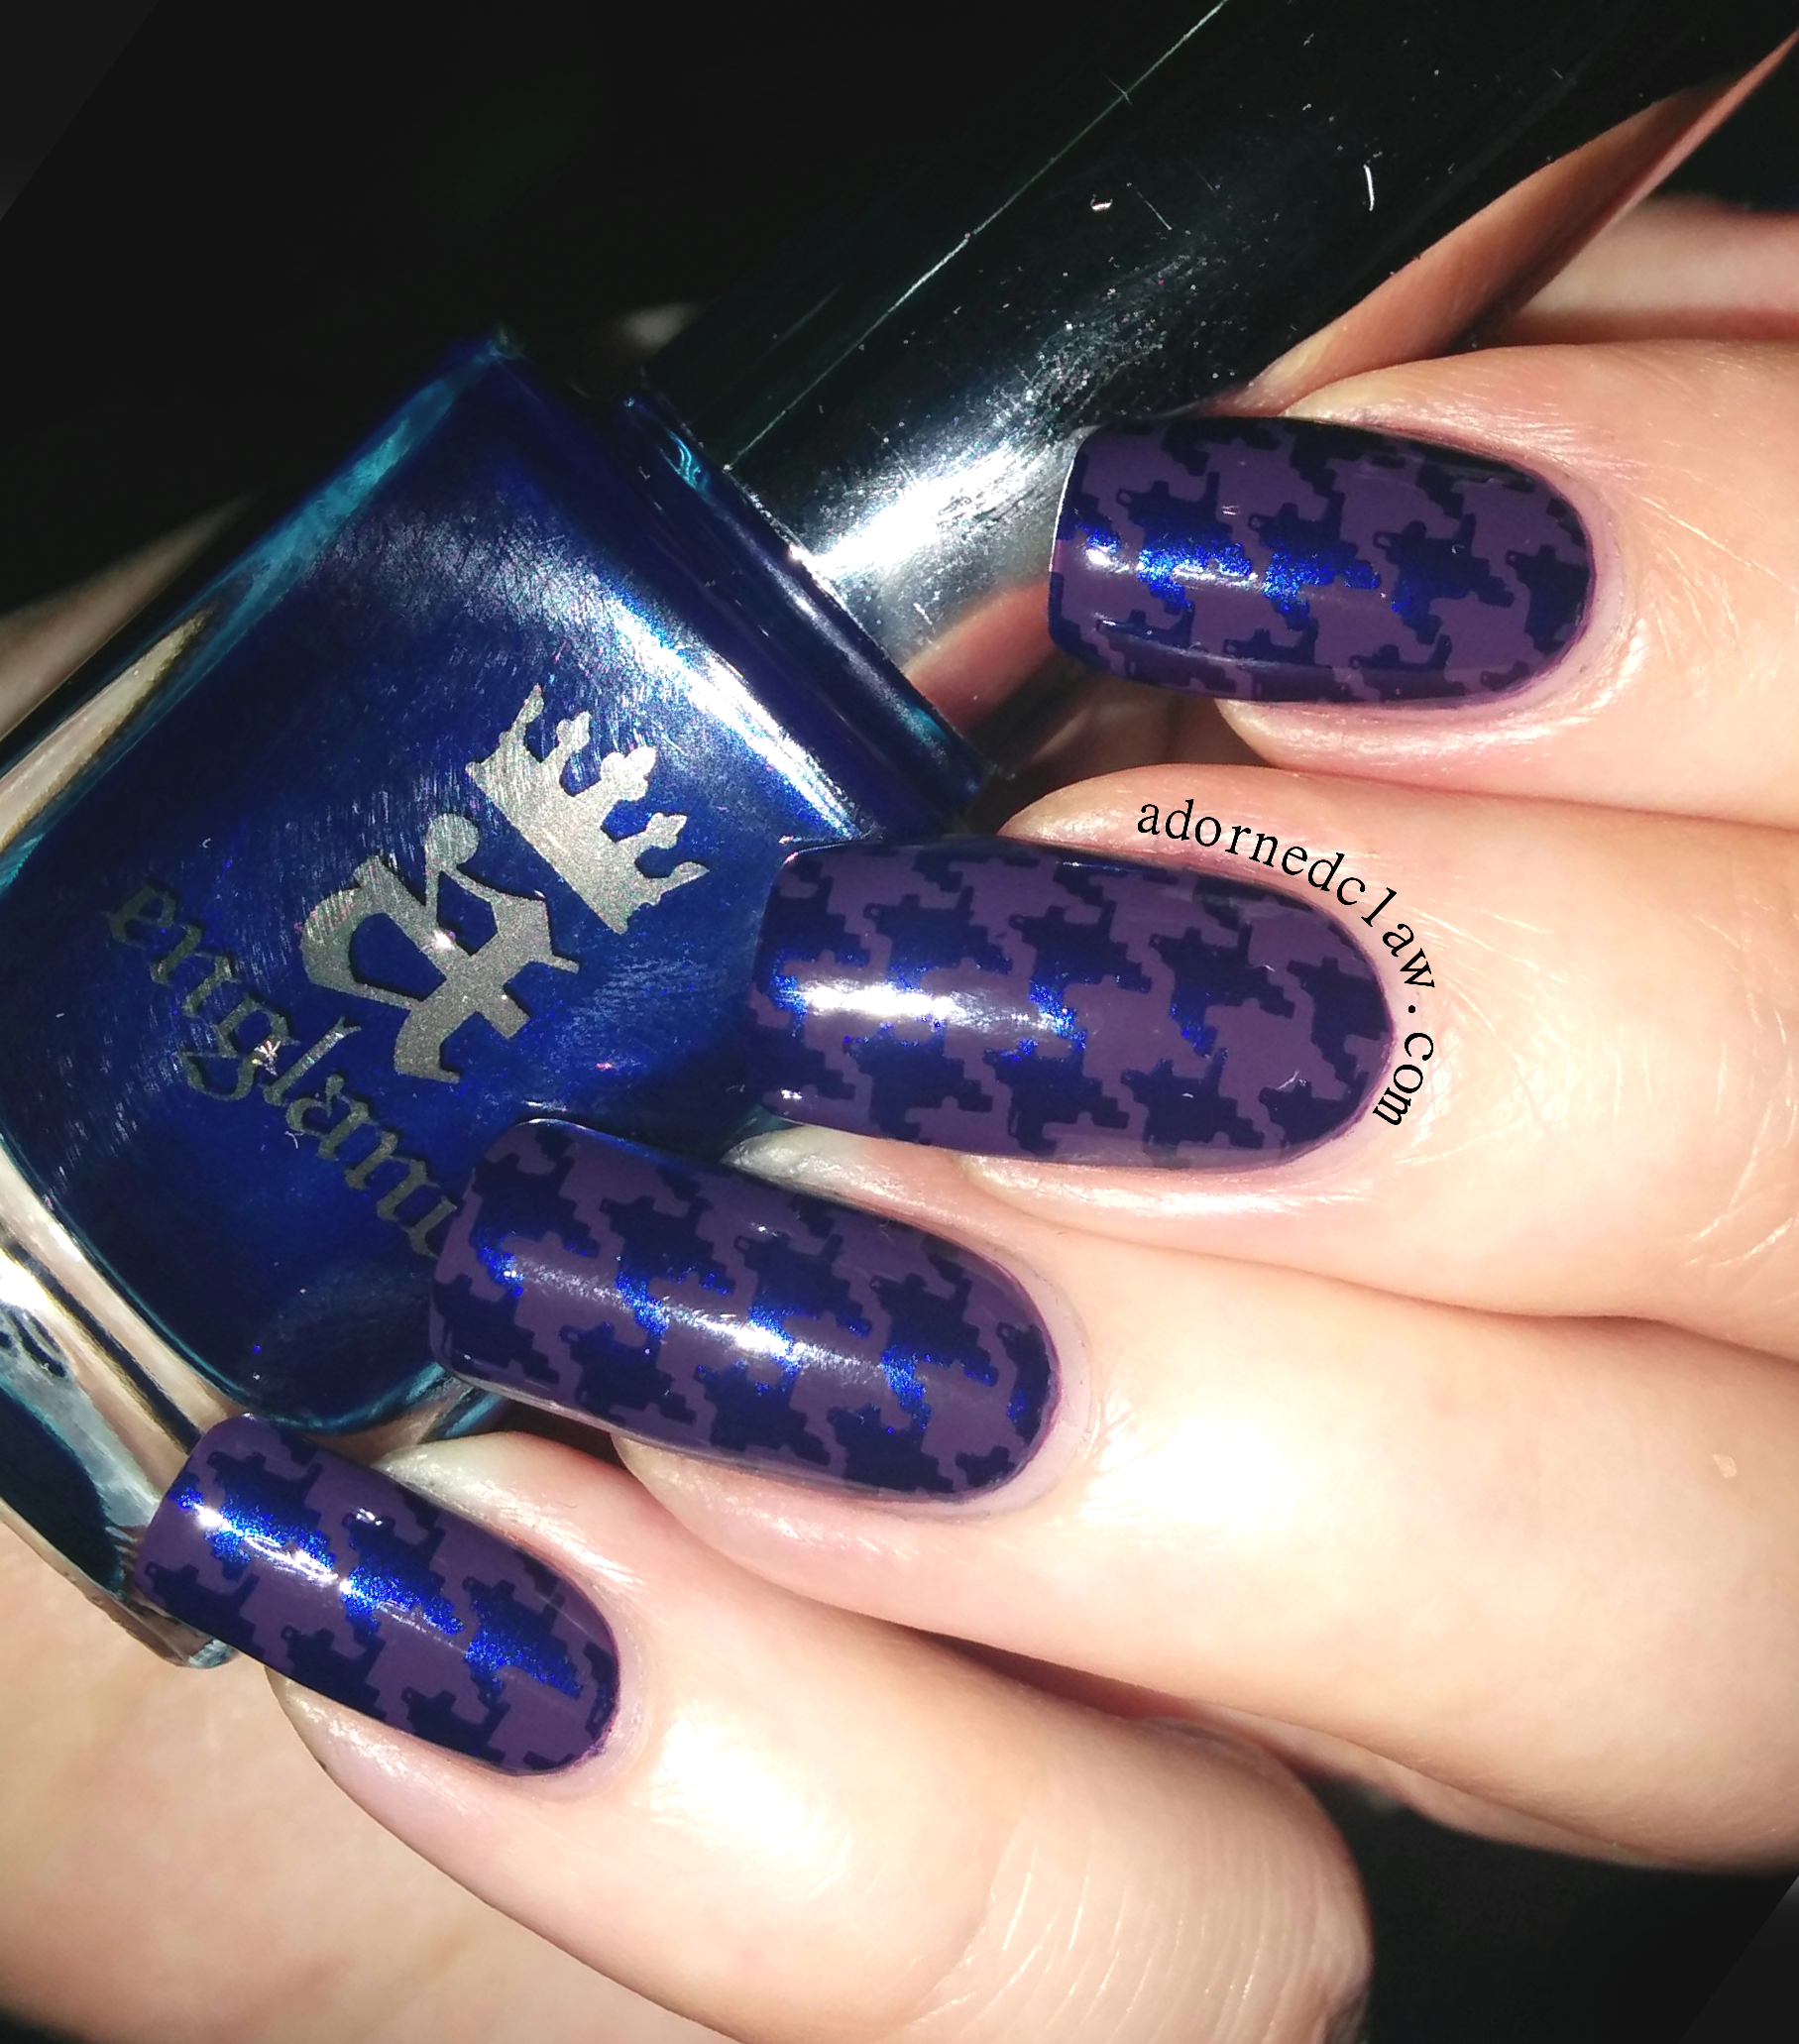 A England Houndstooth Nail Art The Adorned Claw